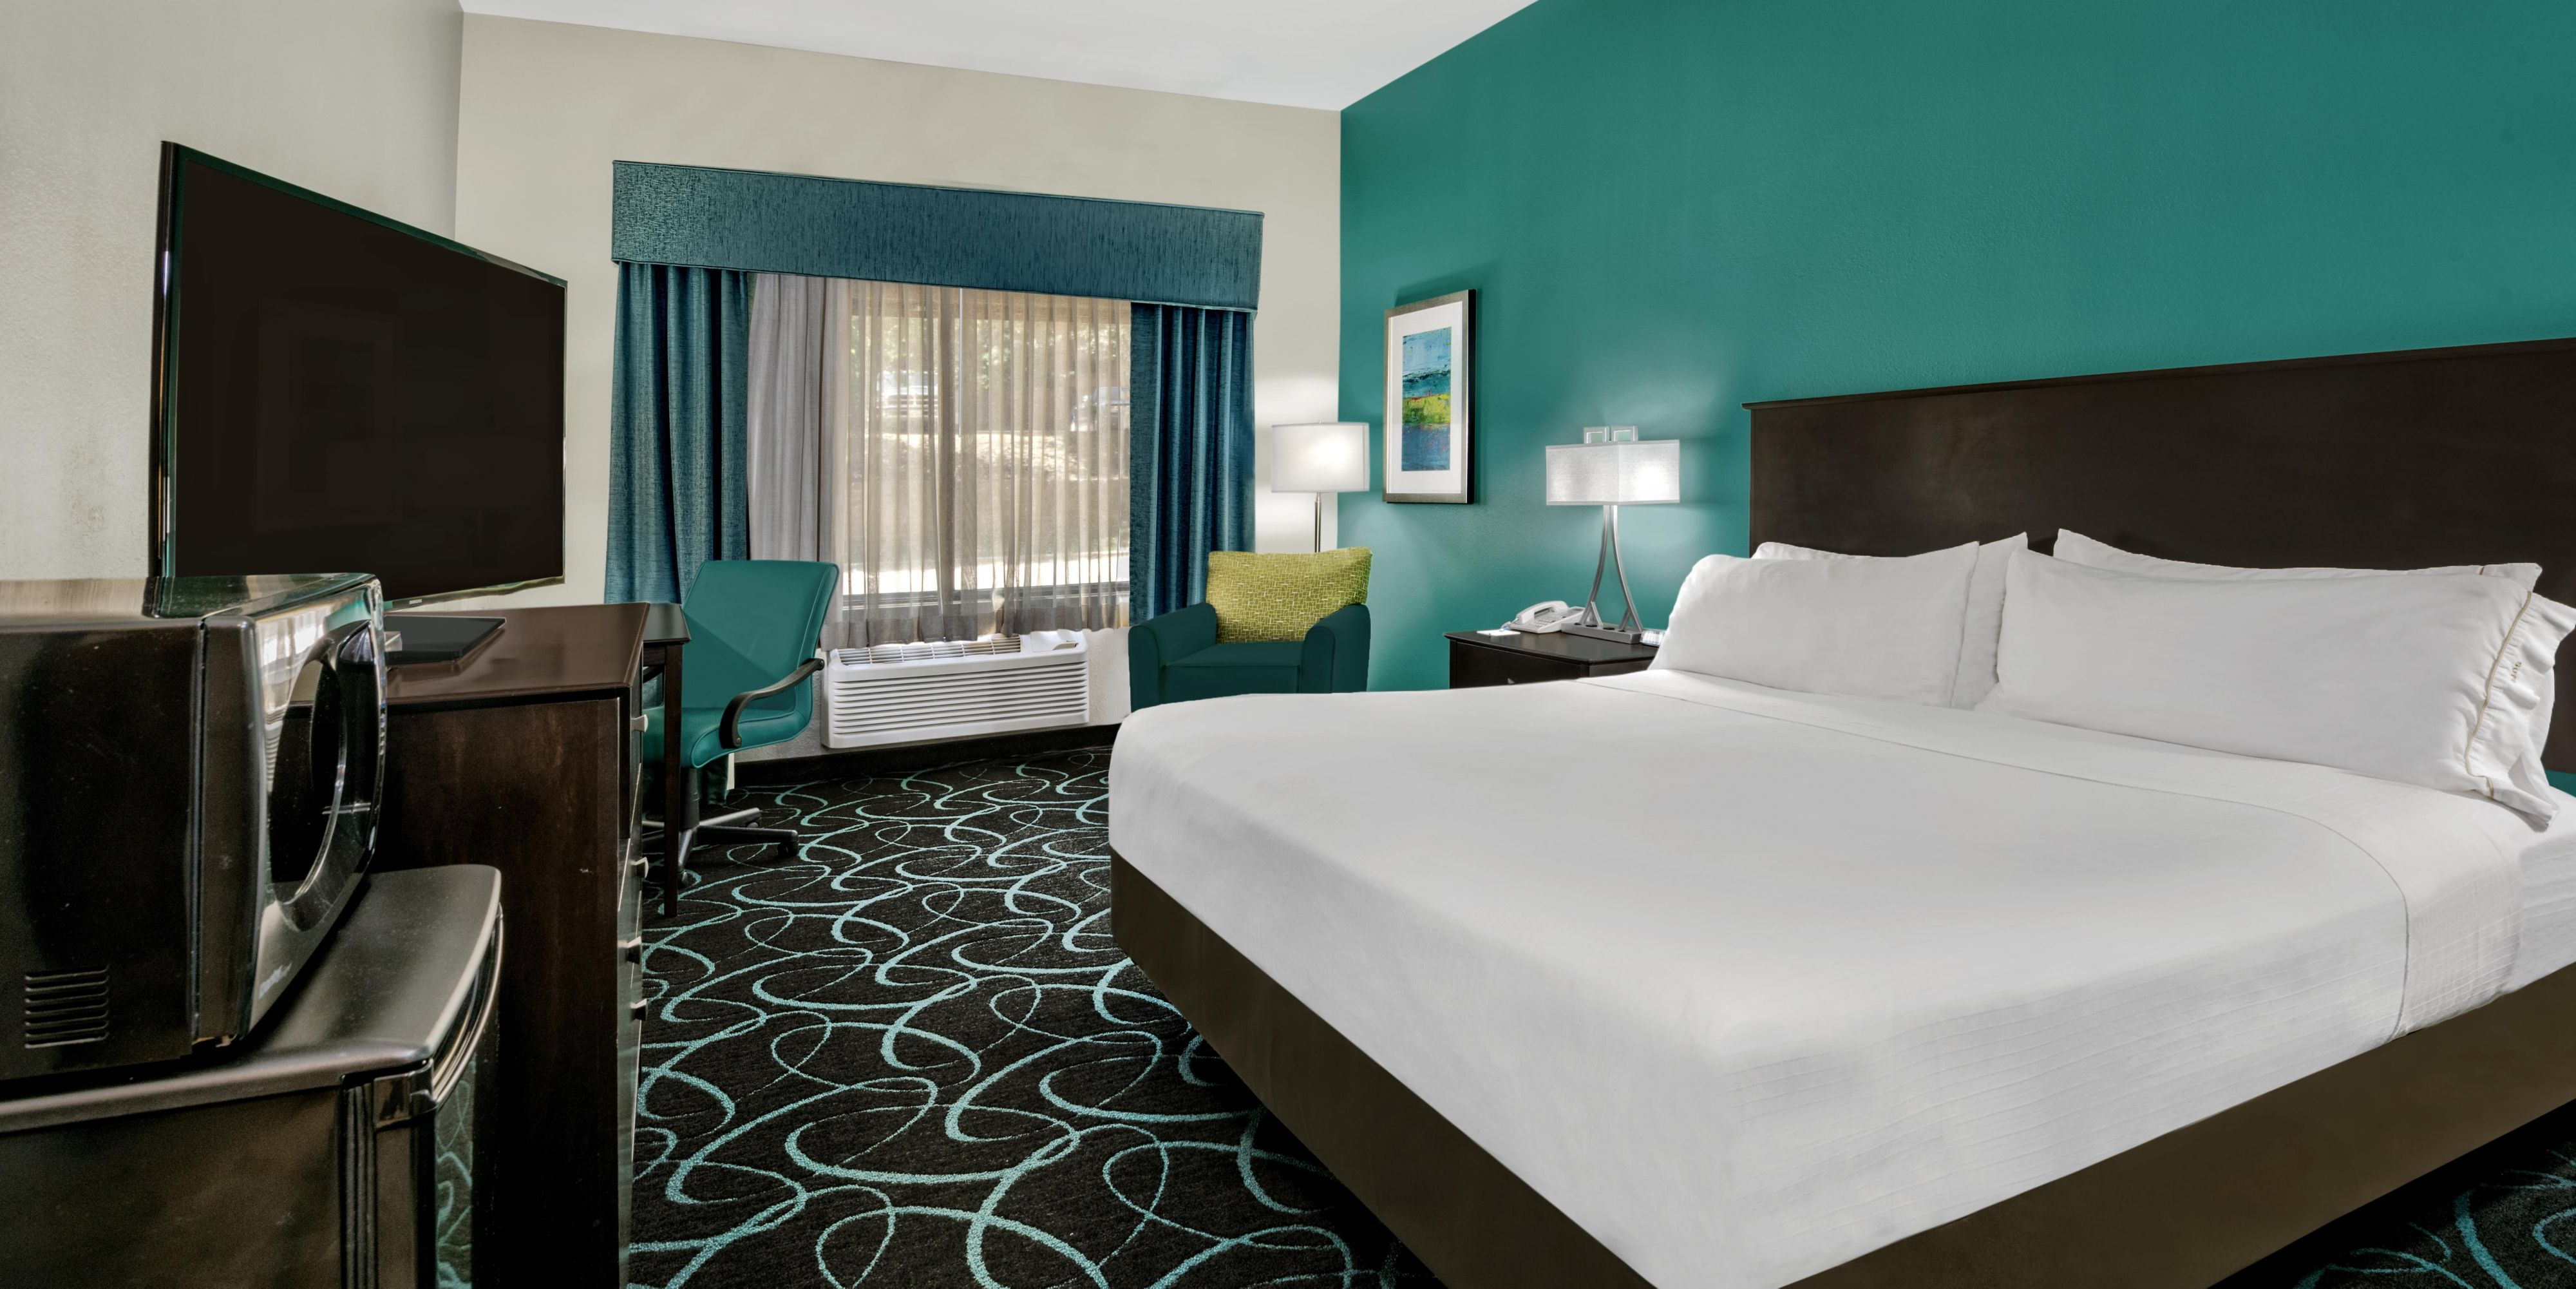 American Inn Fort Worth Holiday Inn Express Suites Fort Worth Southwest I 20 Hotel By Ihg